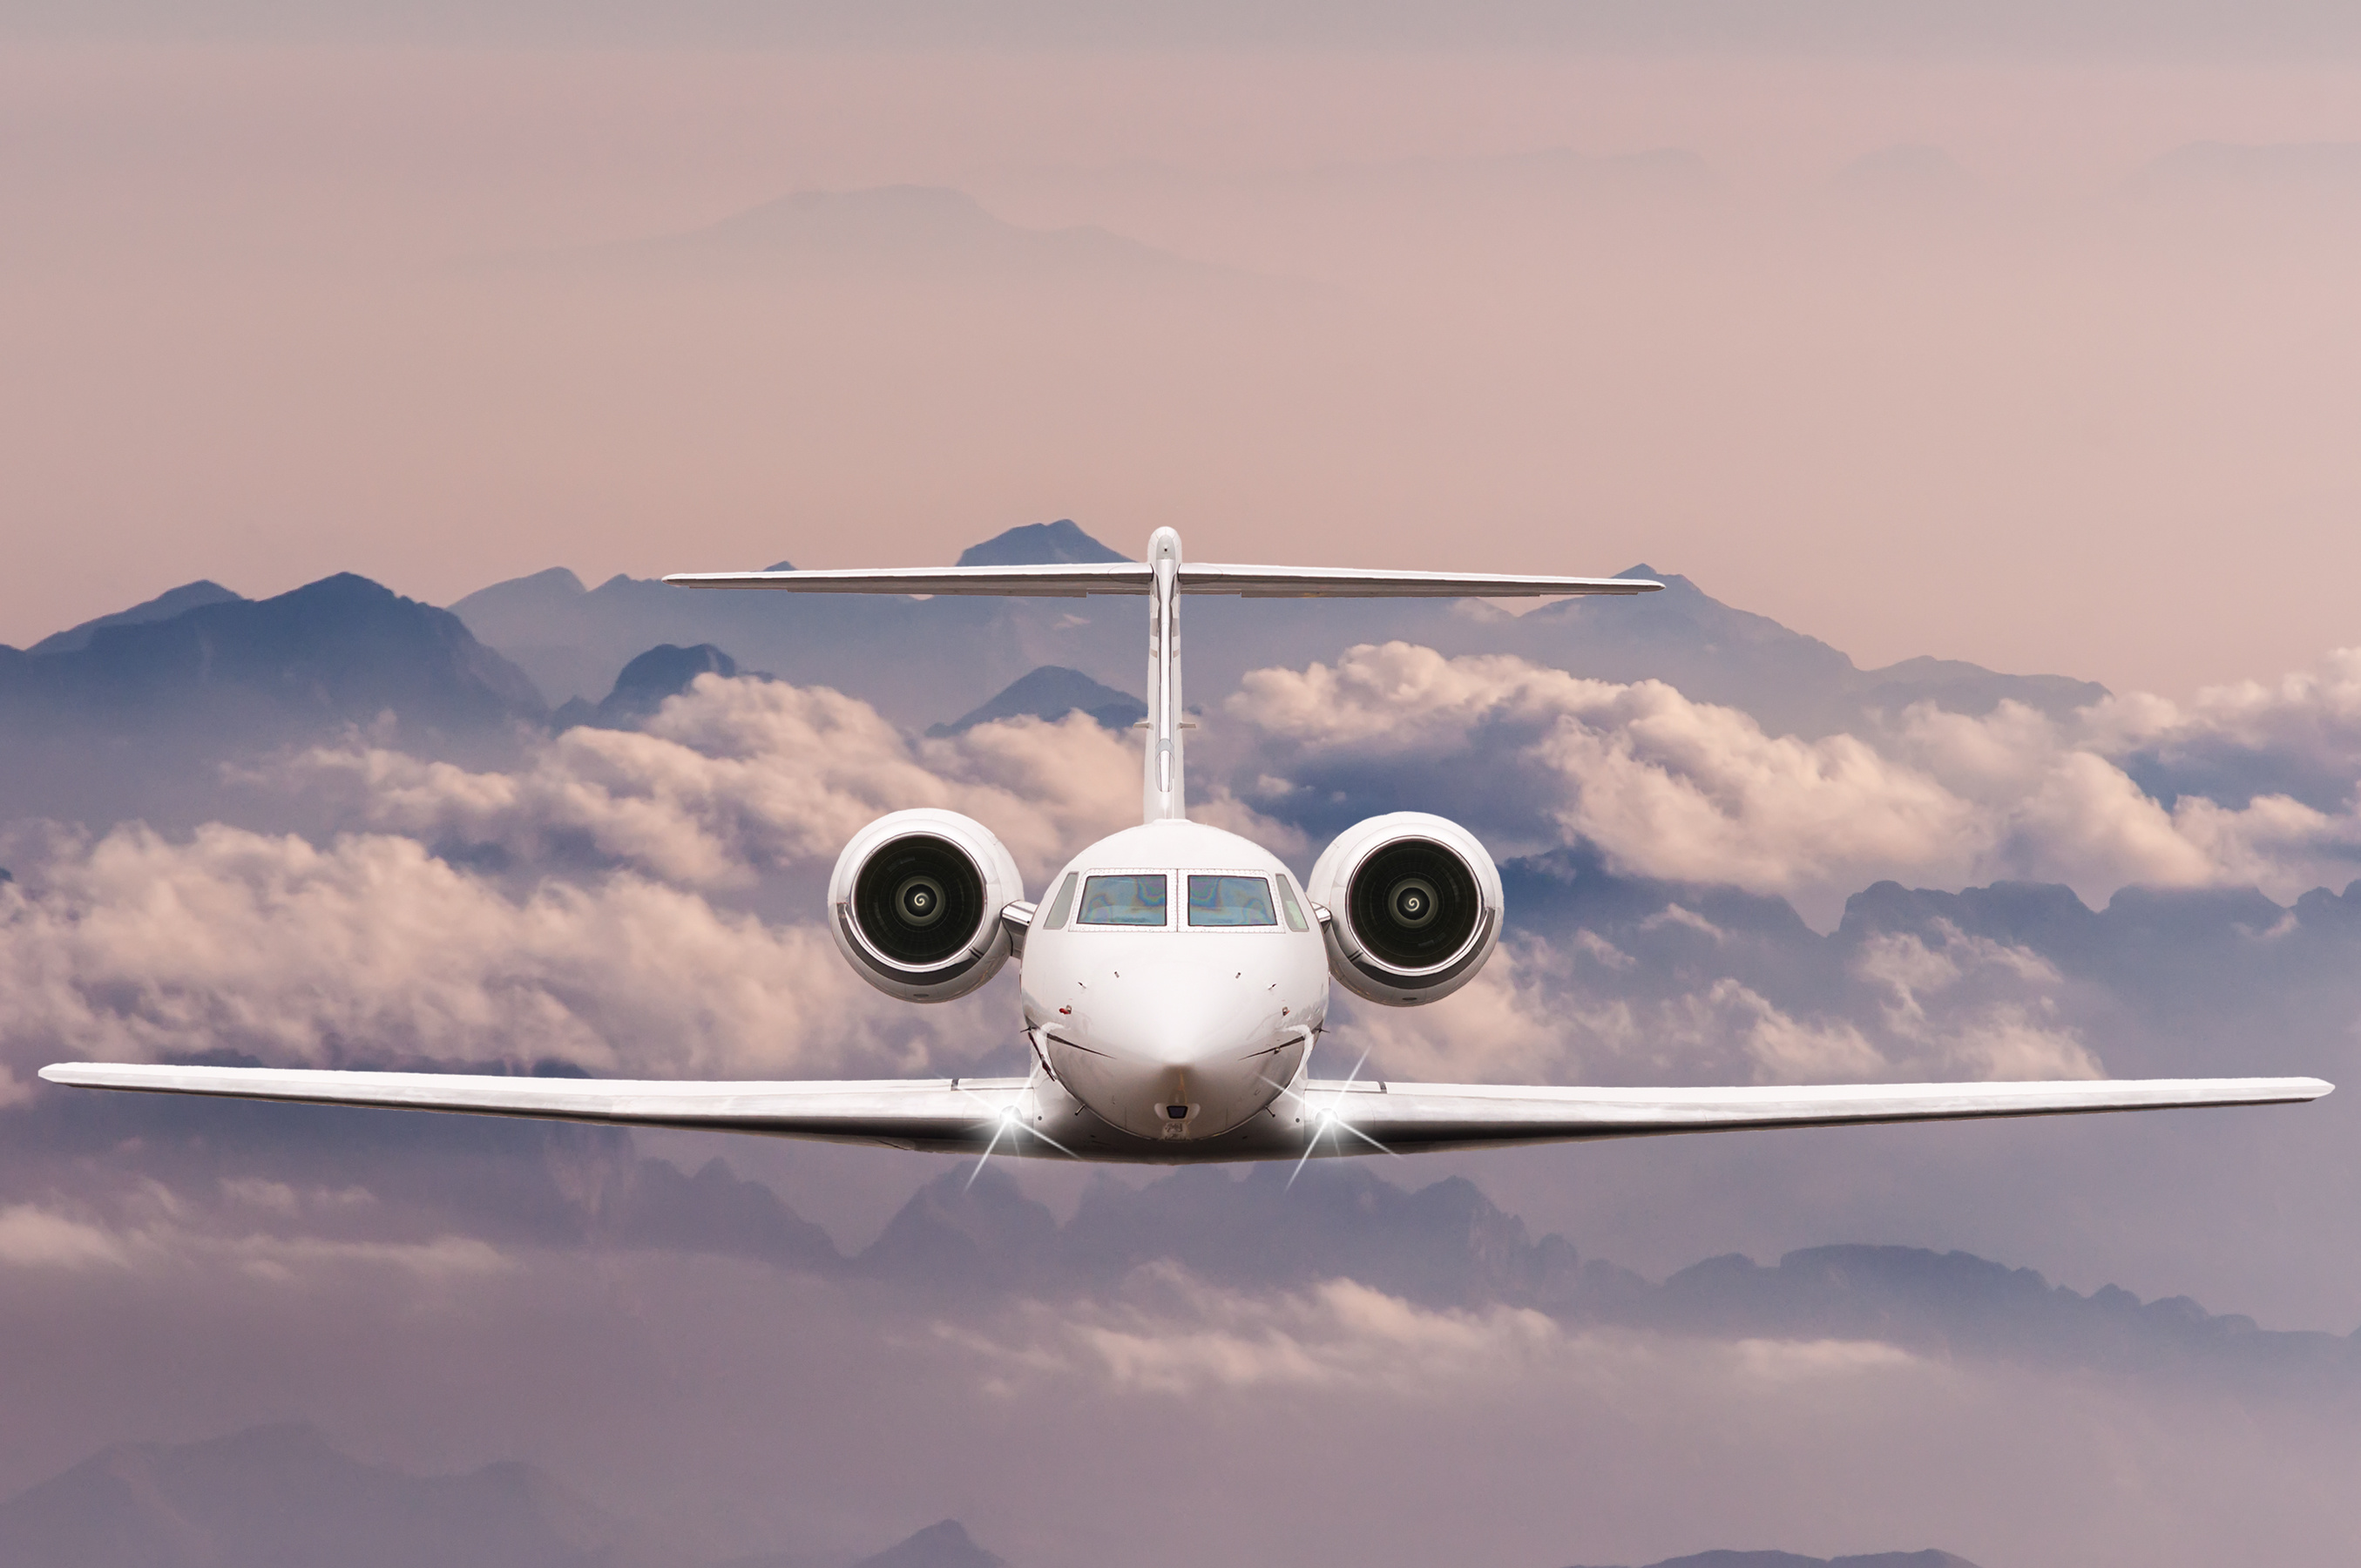 Travel concept. Front view of Jet airliner in flight with sky, cloud and mountain background. Commercial passenger or cargo aircraft, business jet fly over Alps.